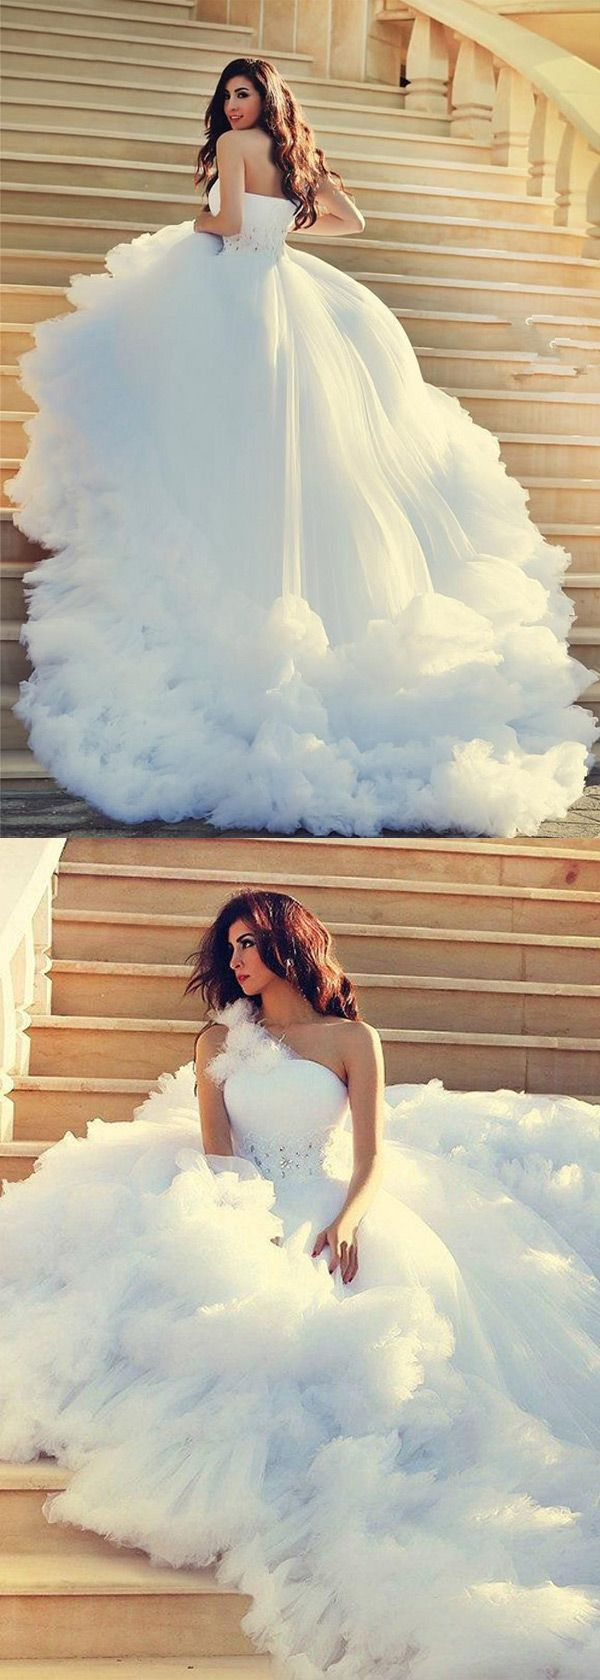 NEW! Fashionable Tulle & Satin One-shoulder Neckline A-line Wedding Dresses With Beaded Lace Appliques